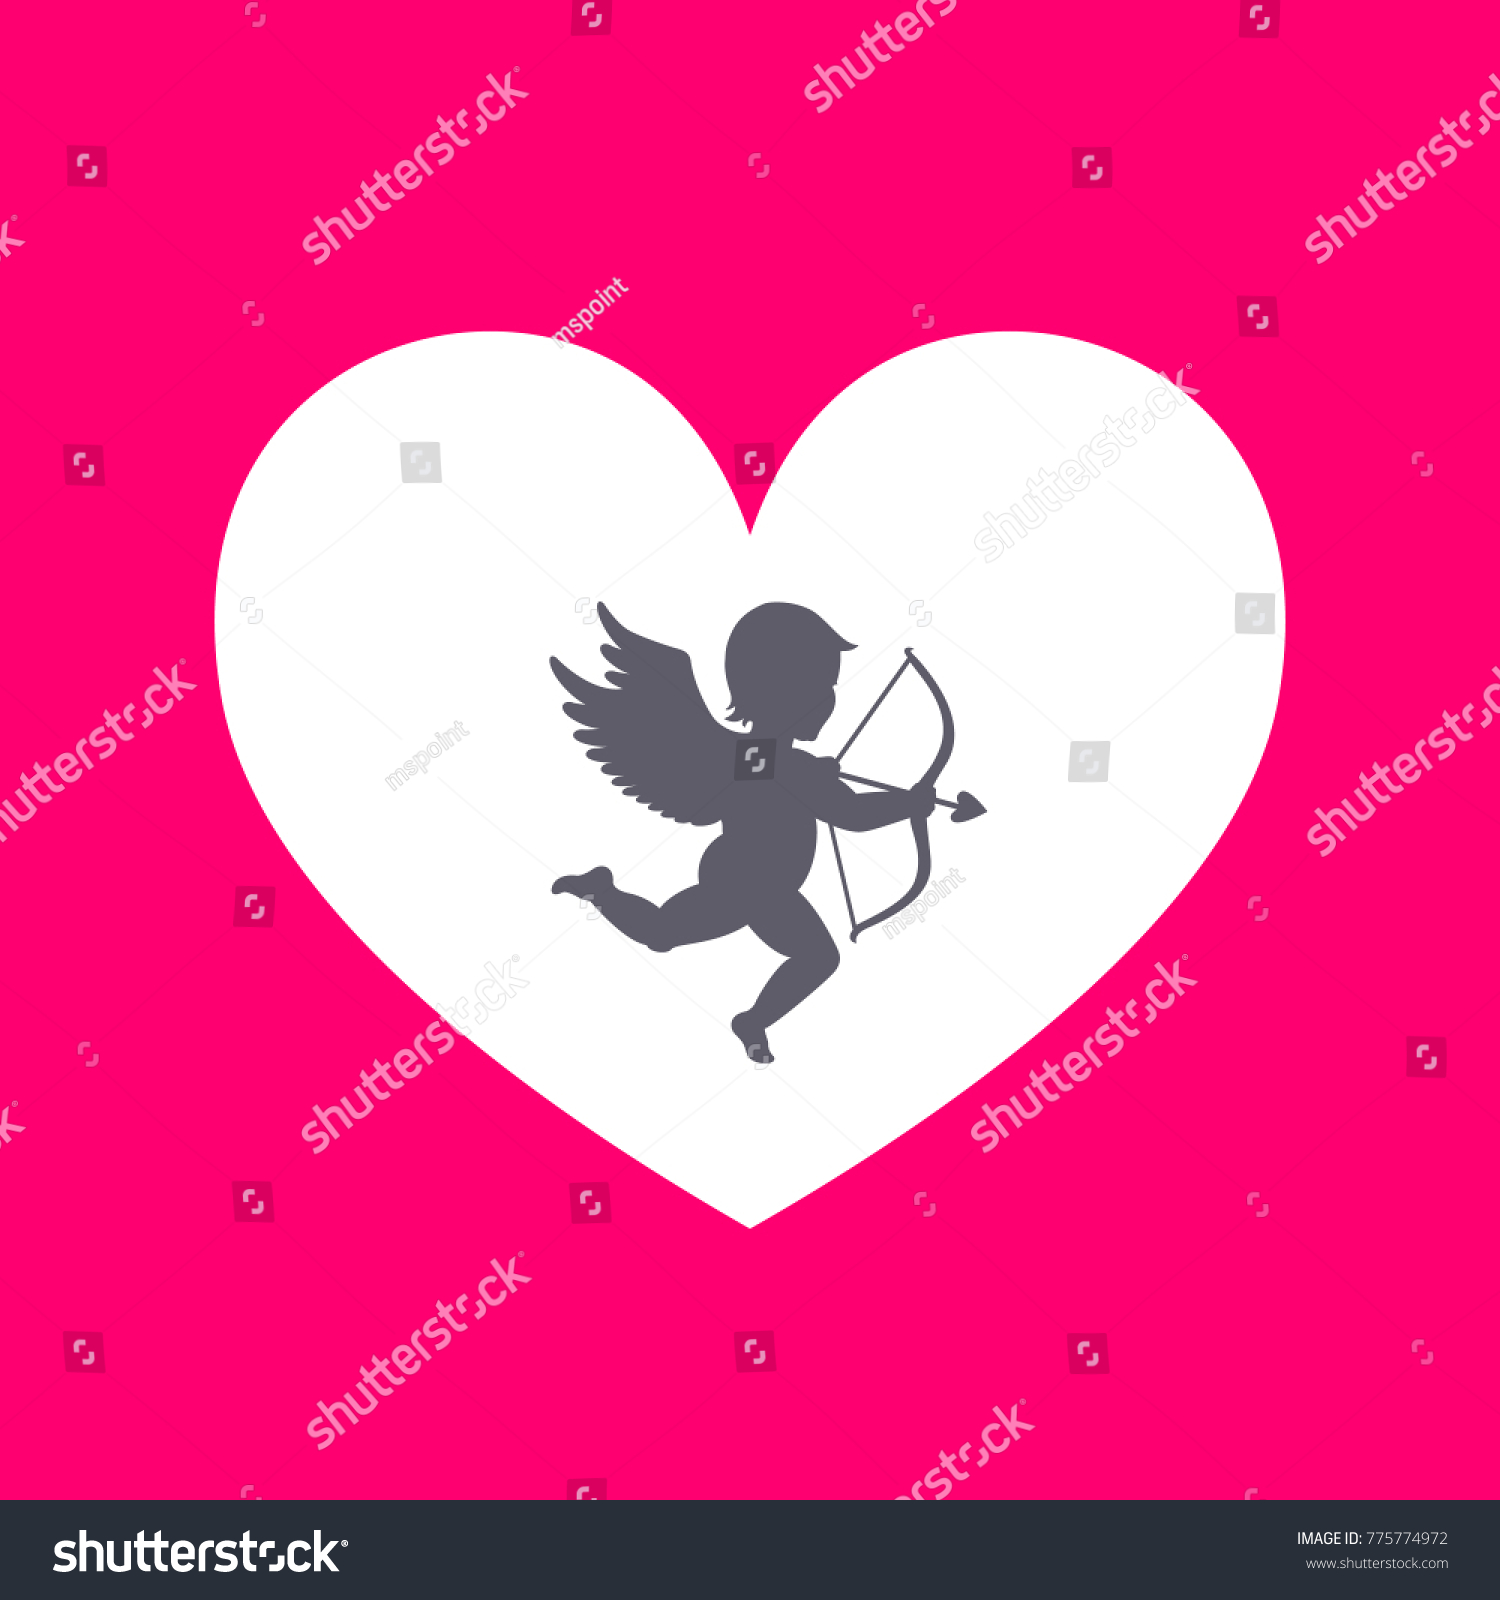 14th february cupid bow arrow greeting stock illustration cupid with bow and arrow greeting card for valentines day kristyandbryce Choice Image